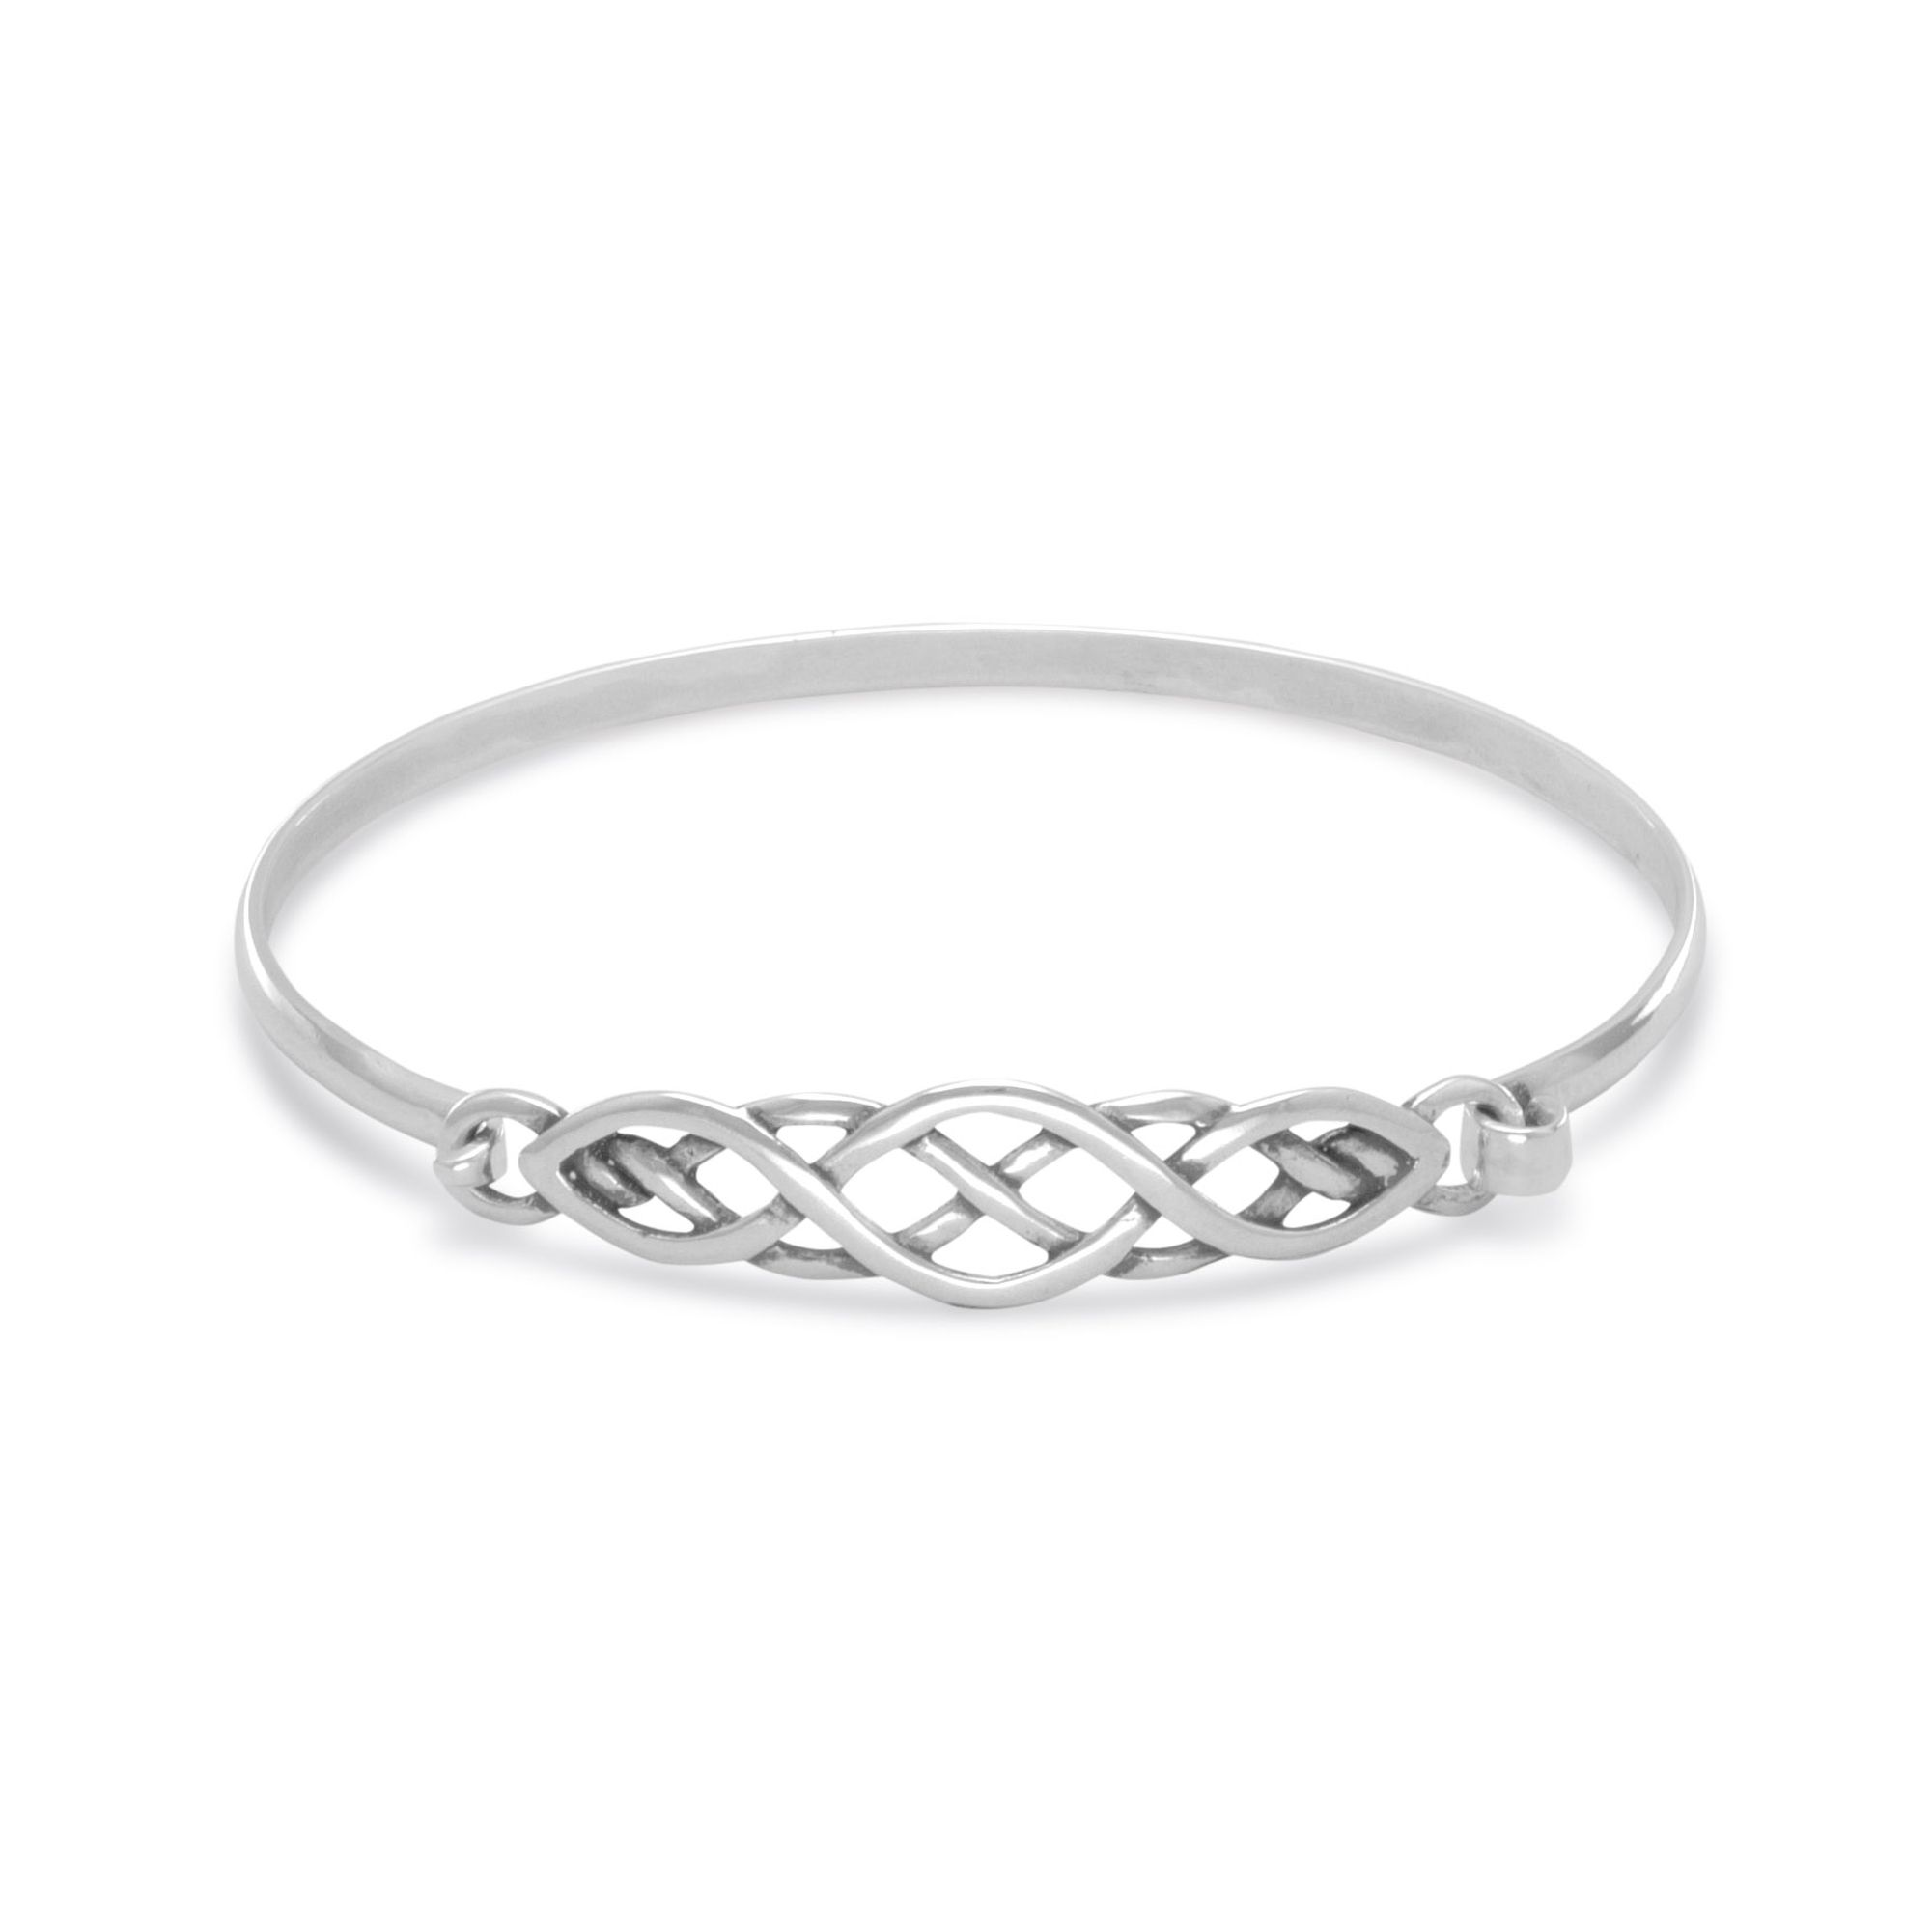 en bangles silver bangle pandora unique bracelets estore moments snowflake